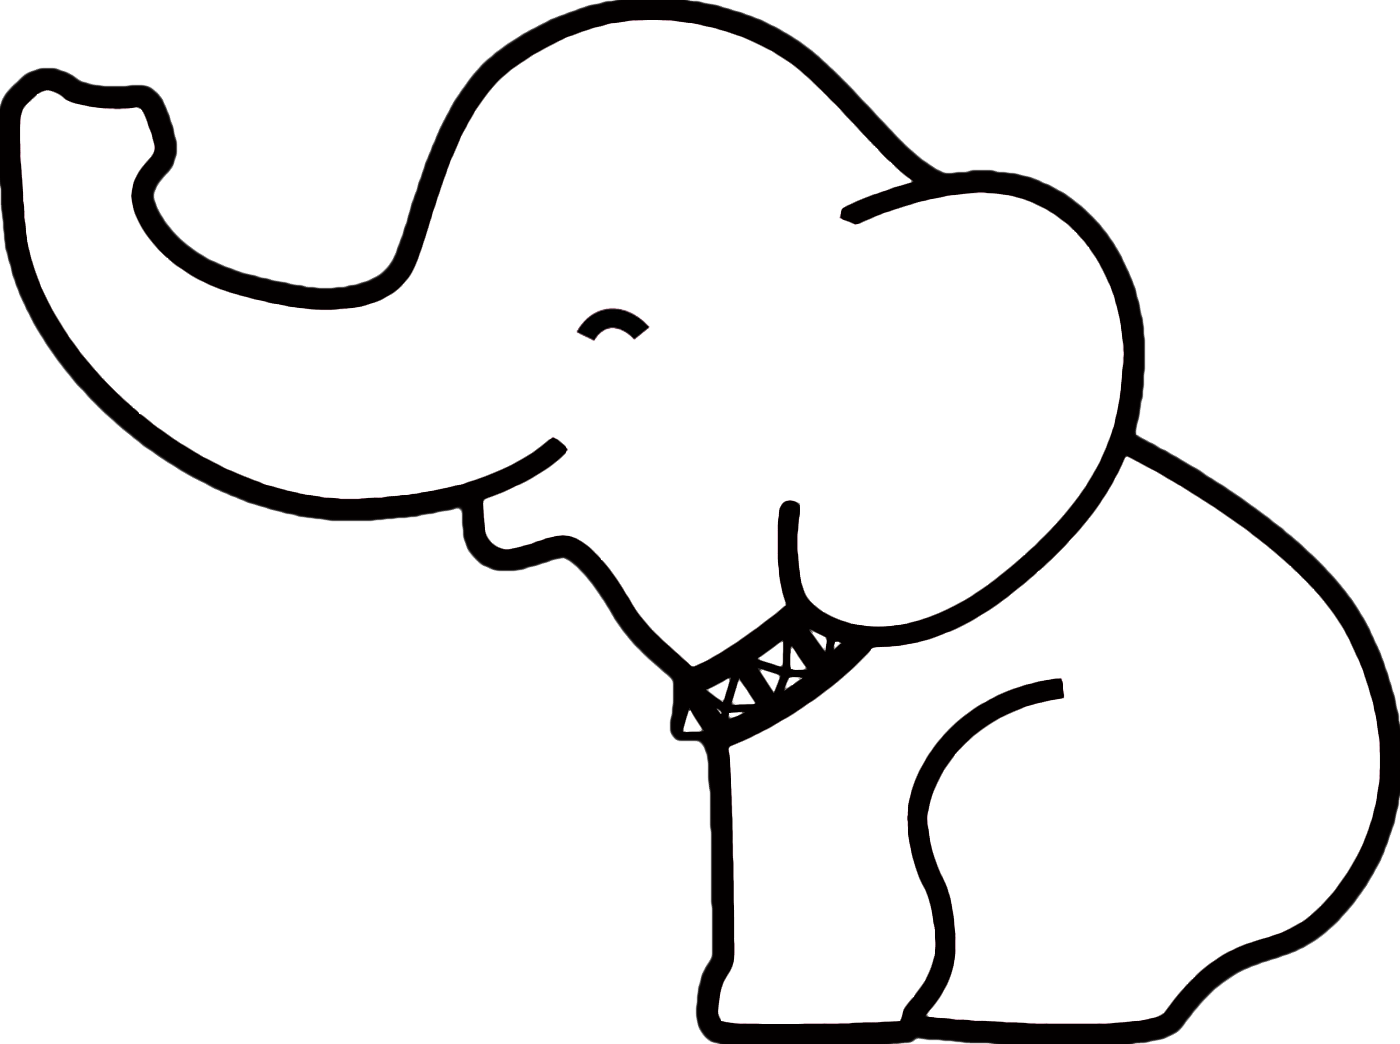 Elephant and piggie trunk clipart pumpkin png black and white Elephant Baby Drawing at GetDrawings.com | Free for personal use ... png black and white